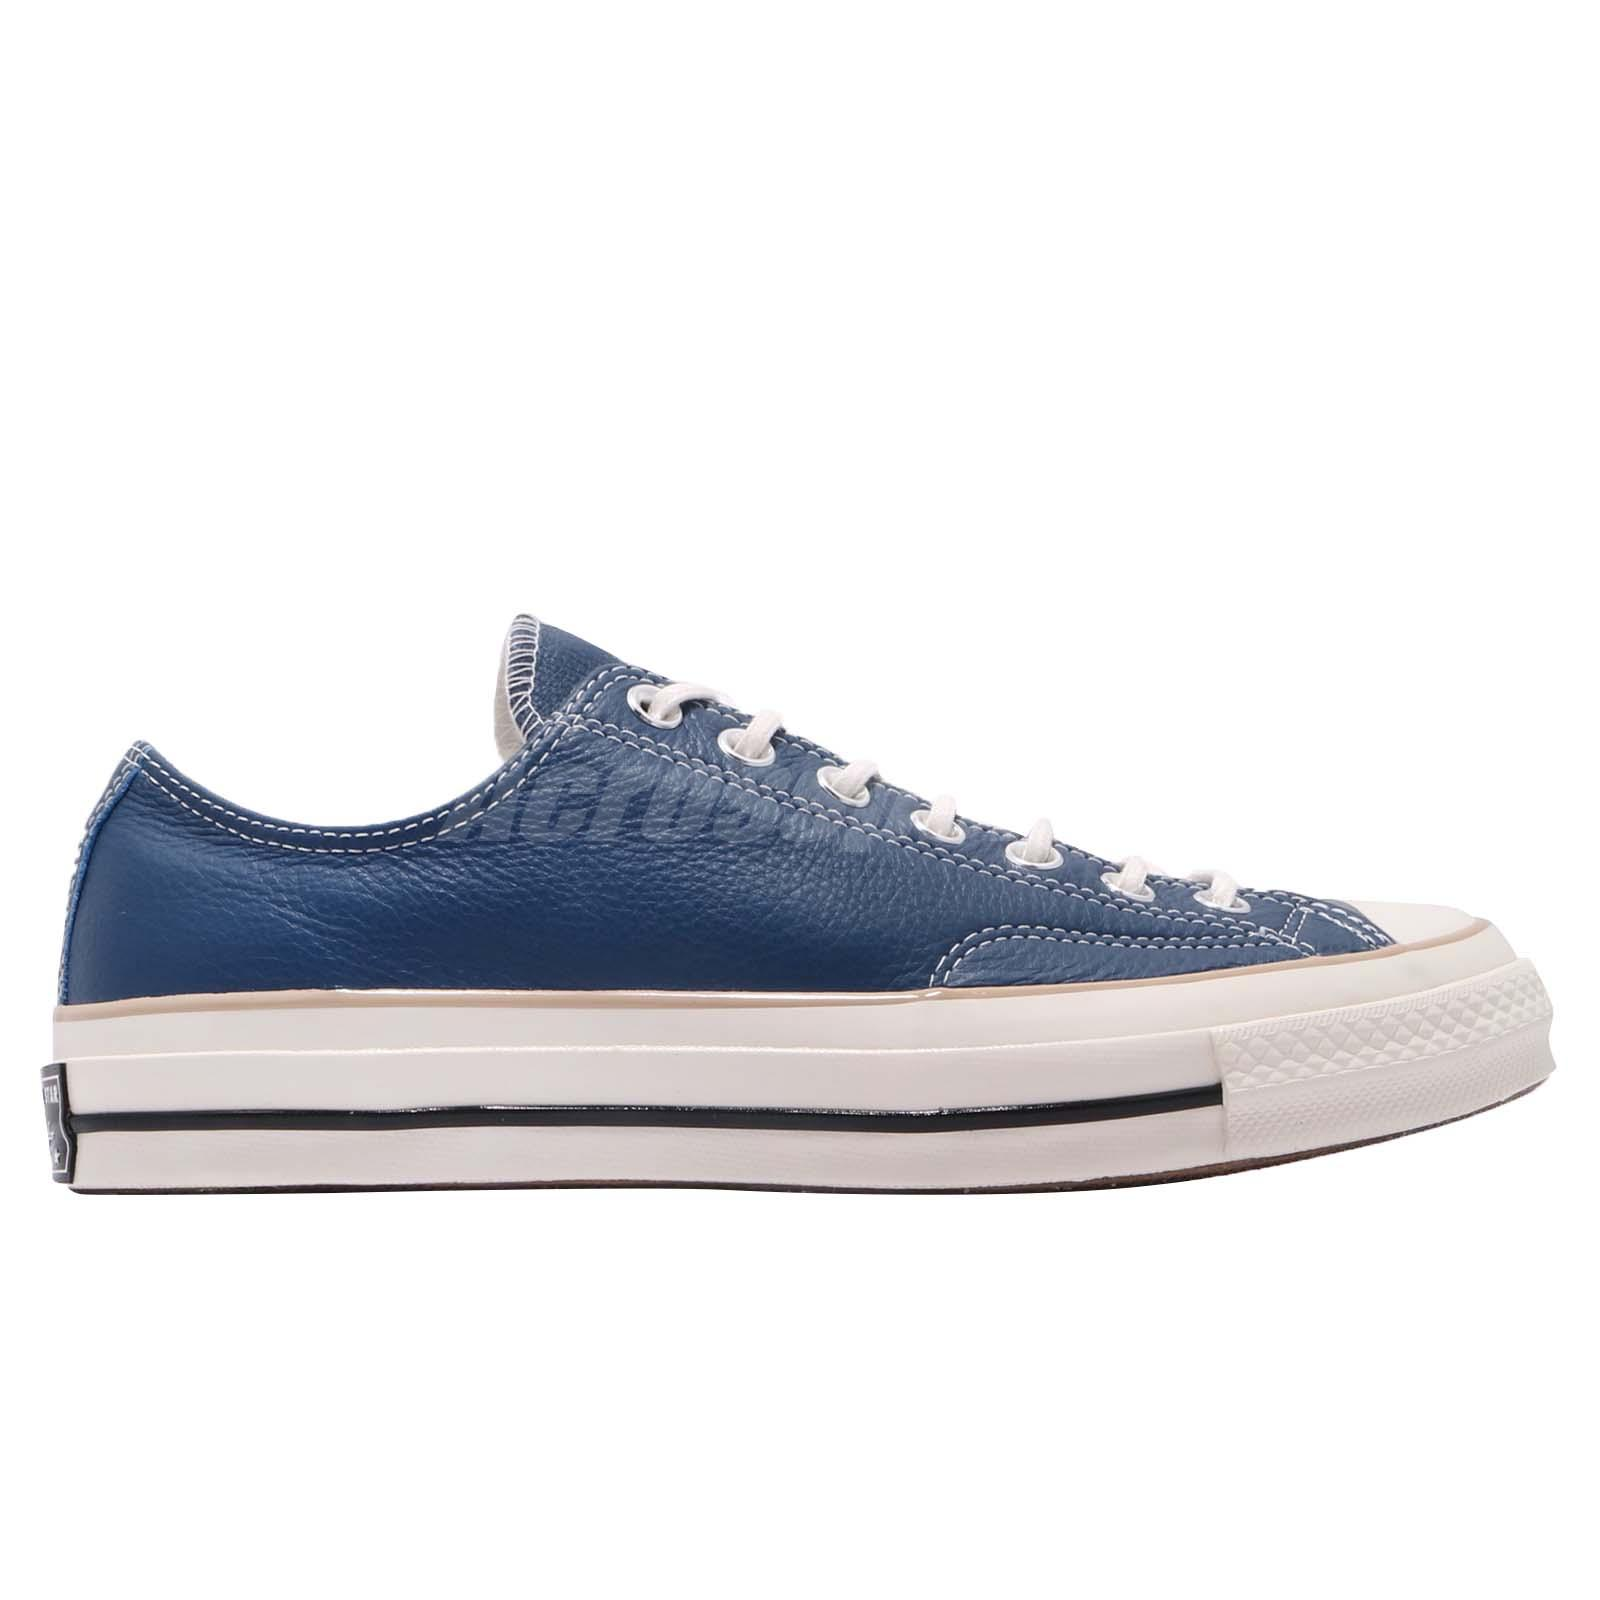 Converse First String Chuck Taylor All Star 70 1970s Ox Blue Men Women 162396c Clothing, Shoes & Accessories